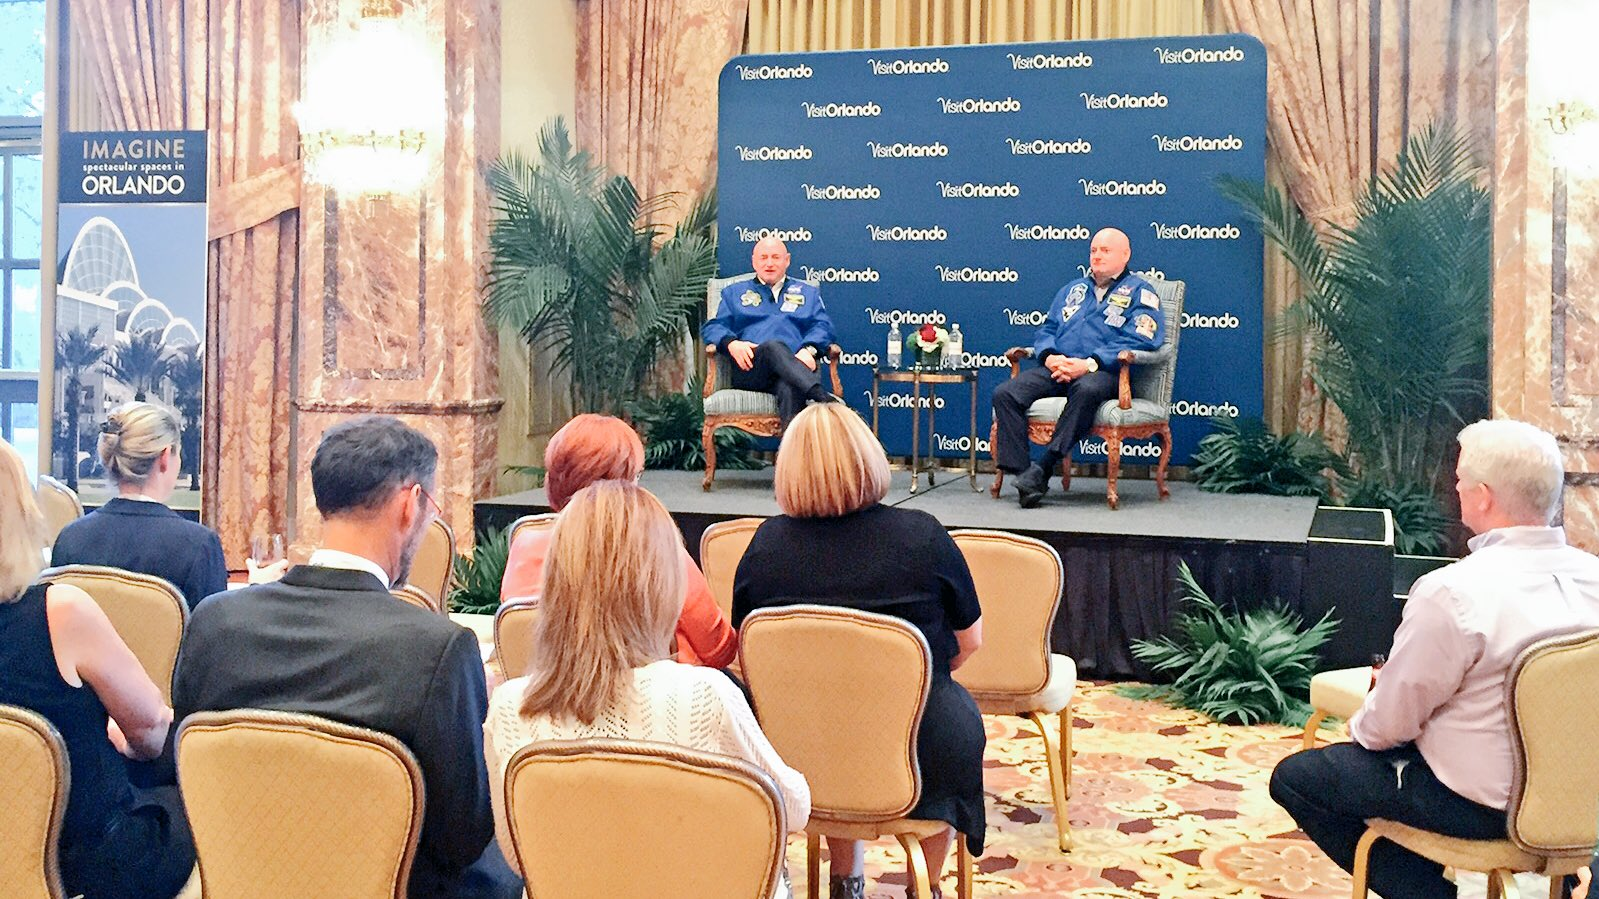 #ASAE16 guests of @VisitOrlando enjoying exclusive Q&A with Astronauts Scott & Mark Kelly. Thanks @KepplerSpeakers! https://t.co/odEpzoPUs0